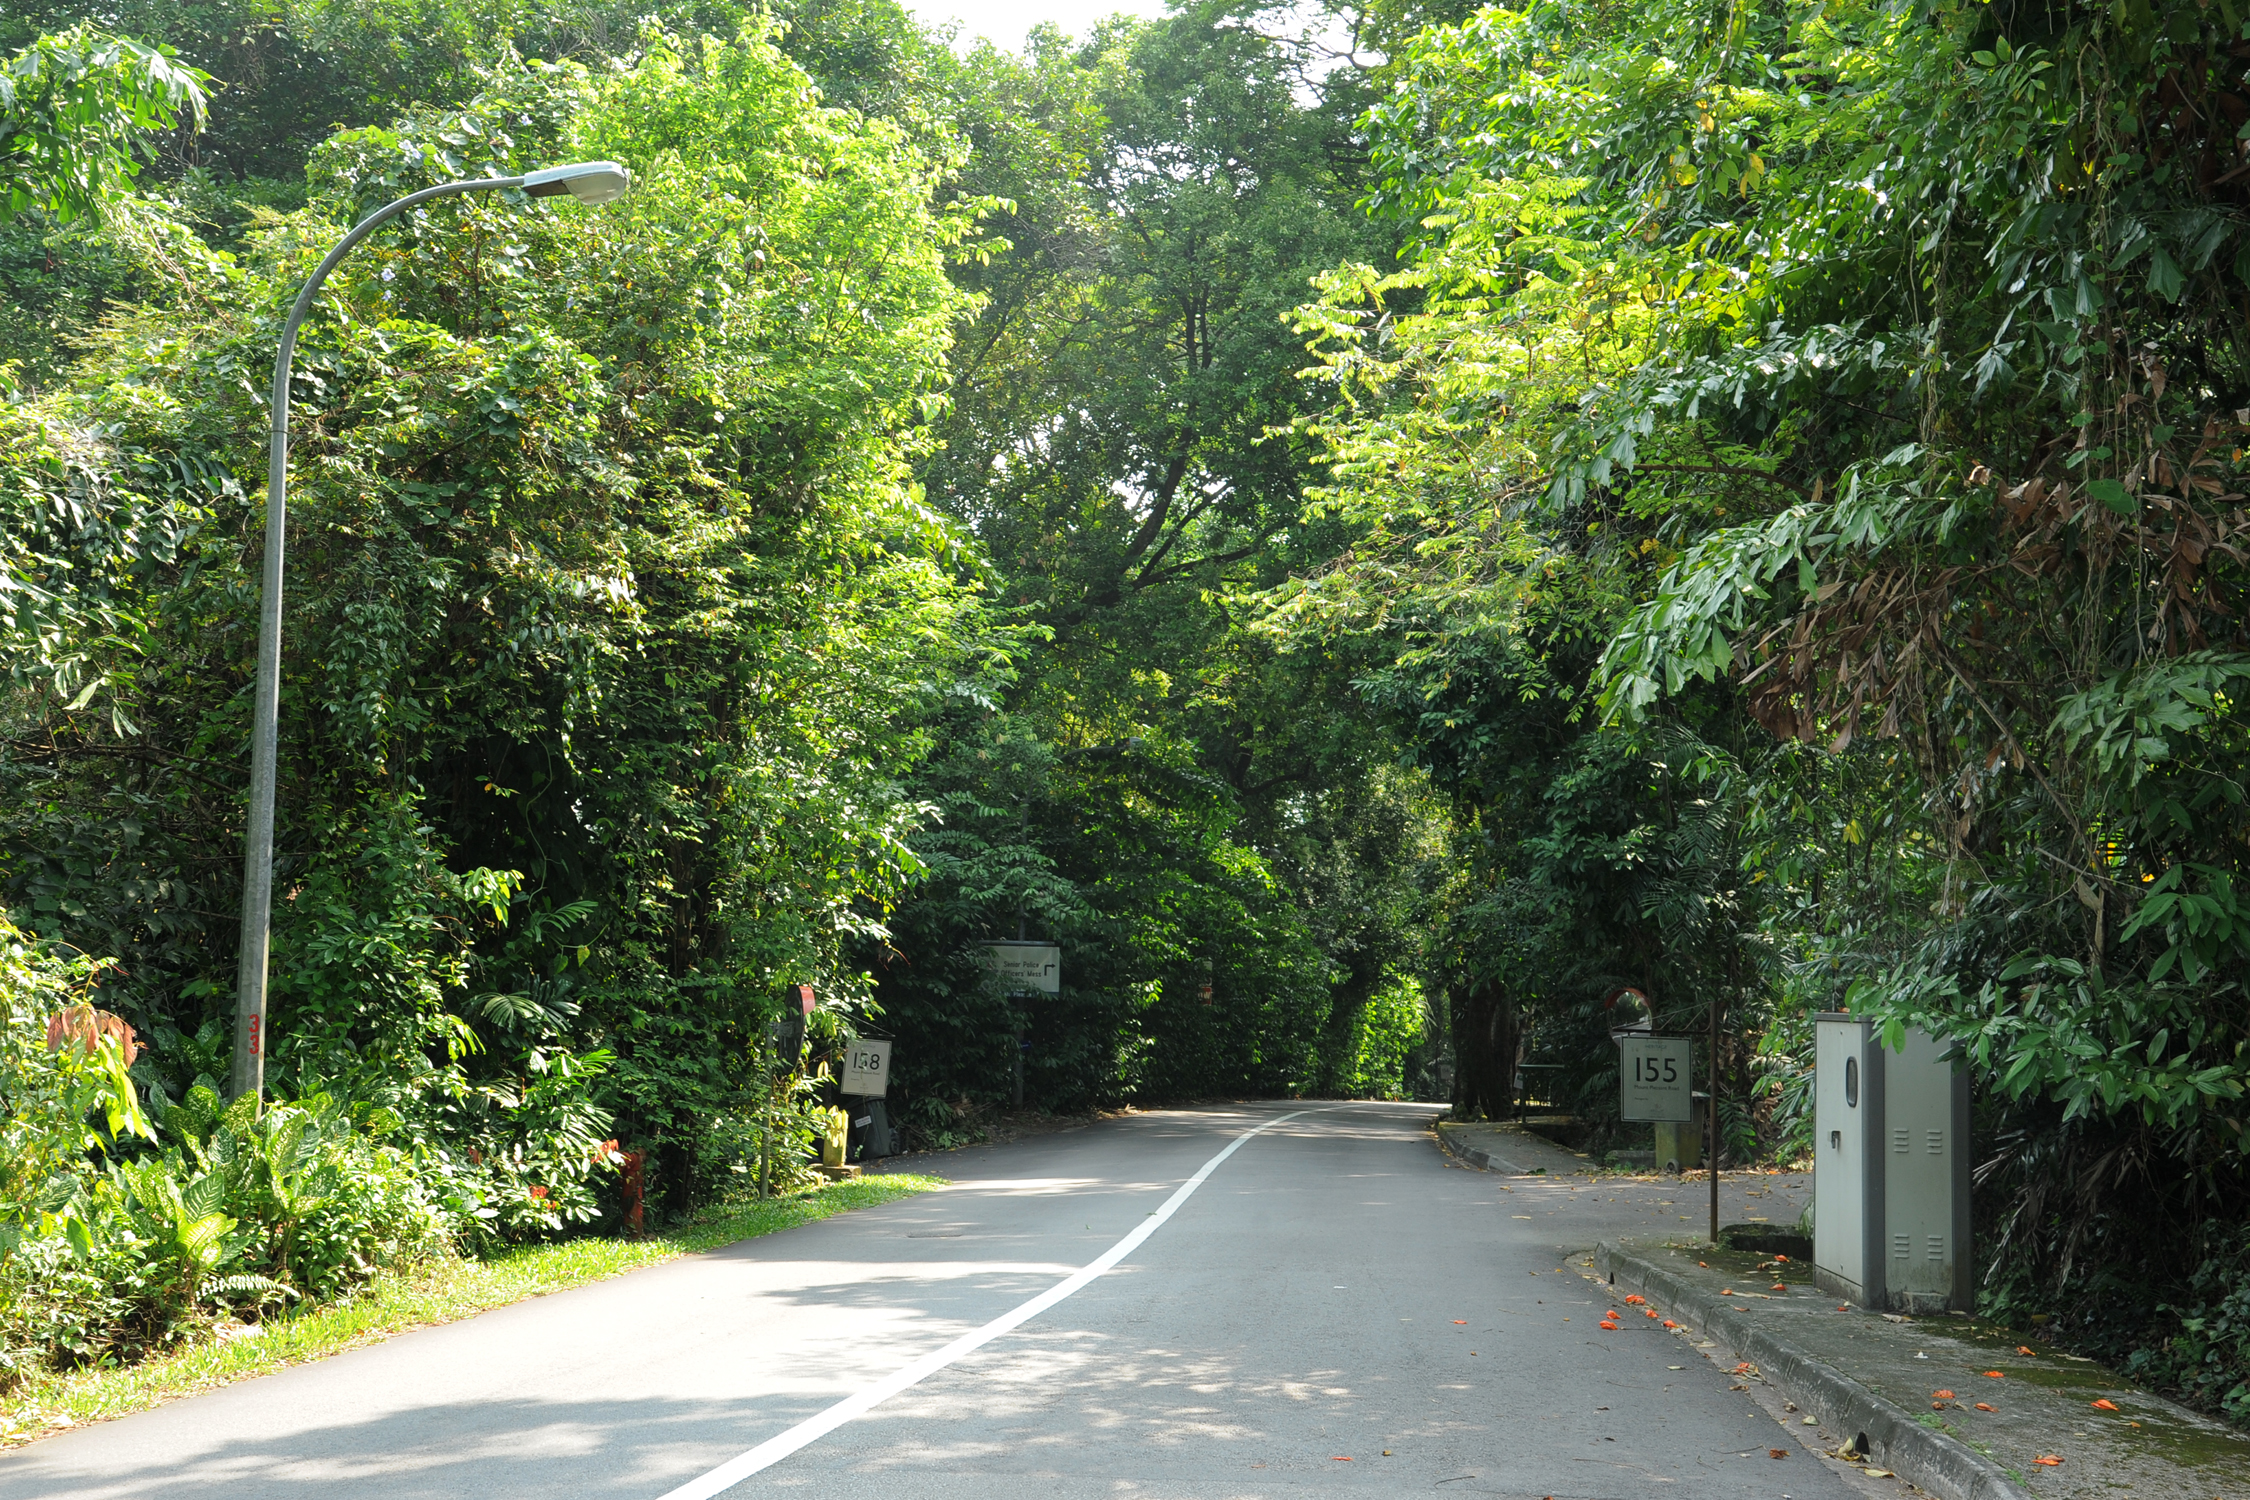 Mount Pleasant Road - Heritage Roads - Gardens, Parks & Nature - National Parks Board (NParks)